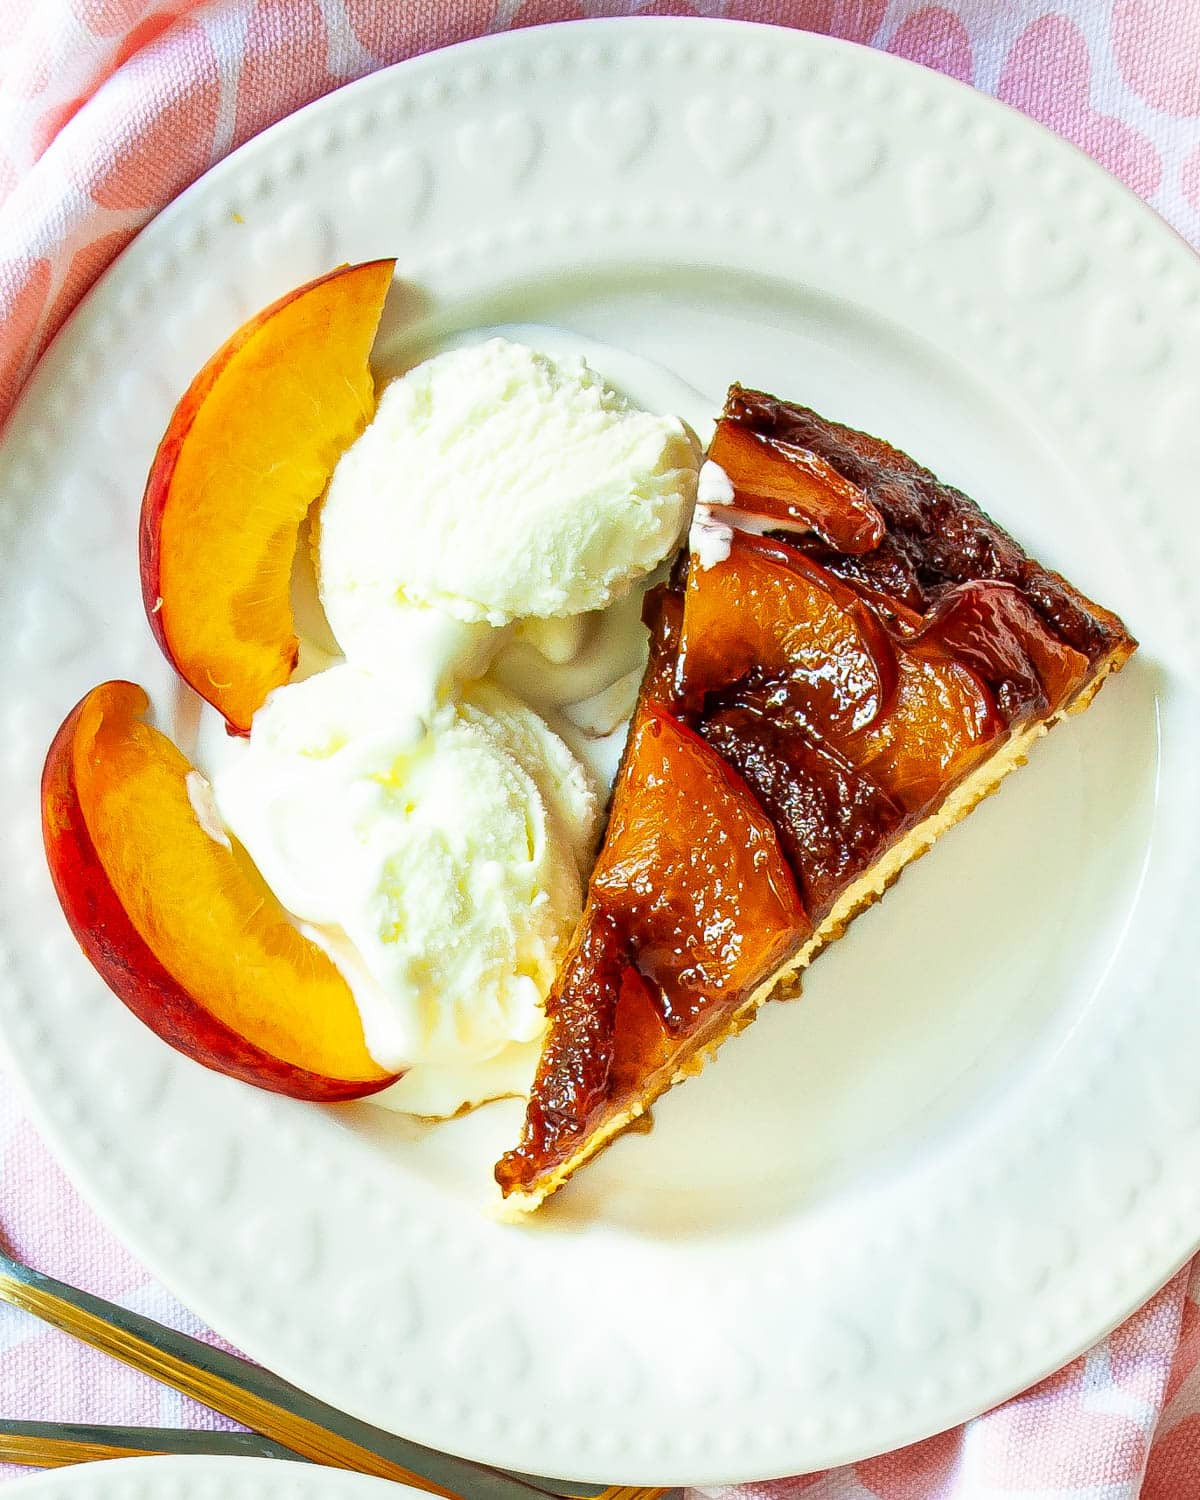 a slice of Peach Upside Down Cake with 2 scoops of ice cream on a white plate